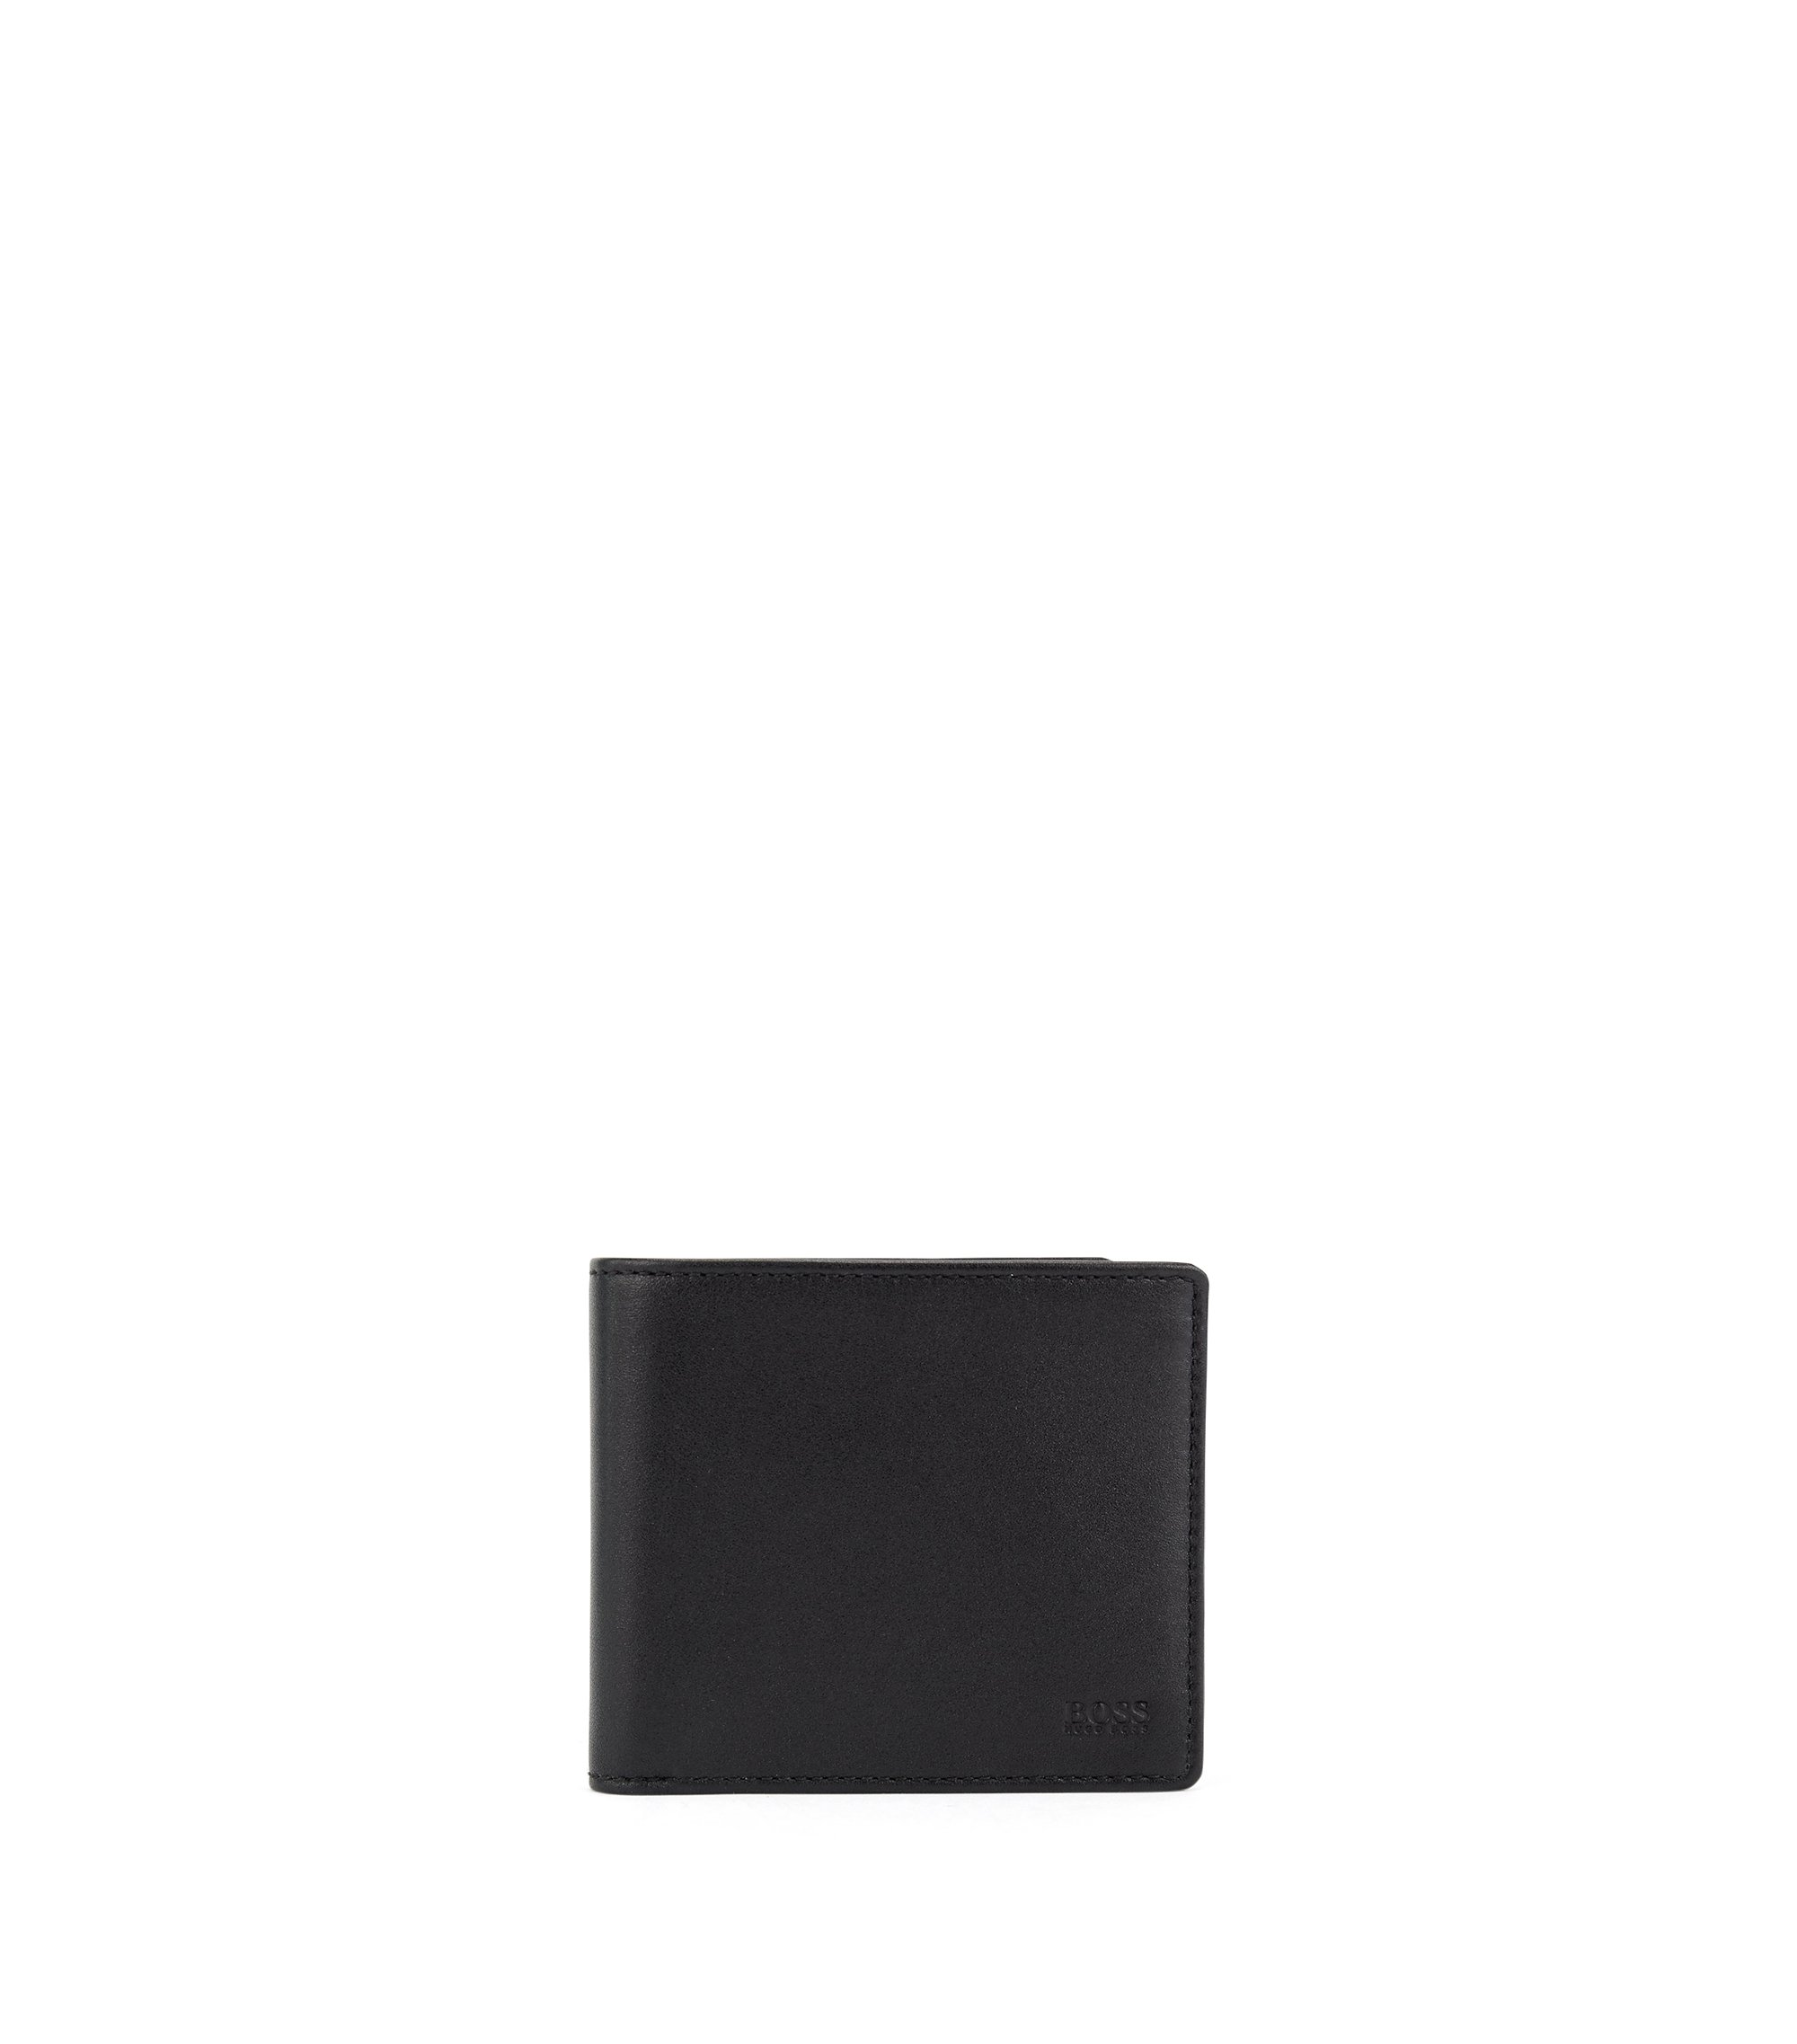 Billfold wallet in smooth nappa leather, Black